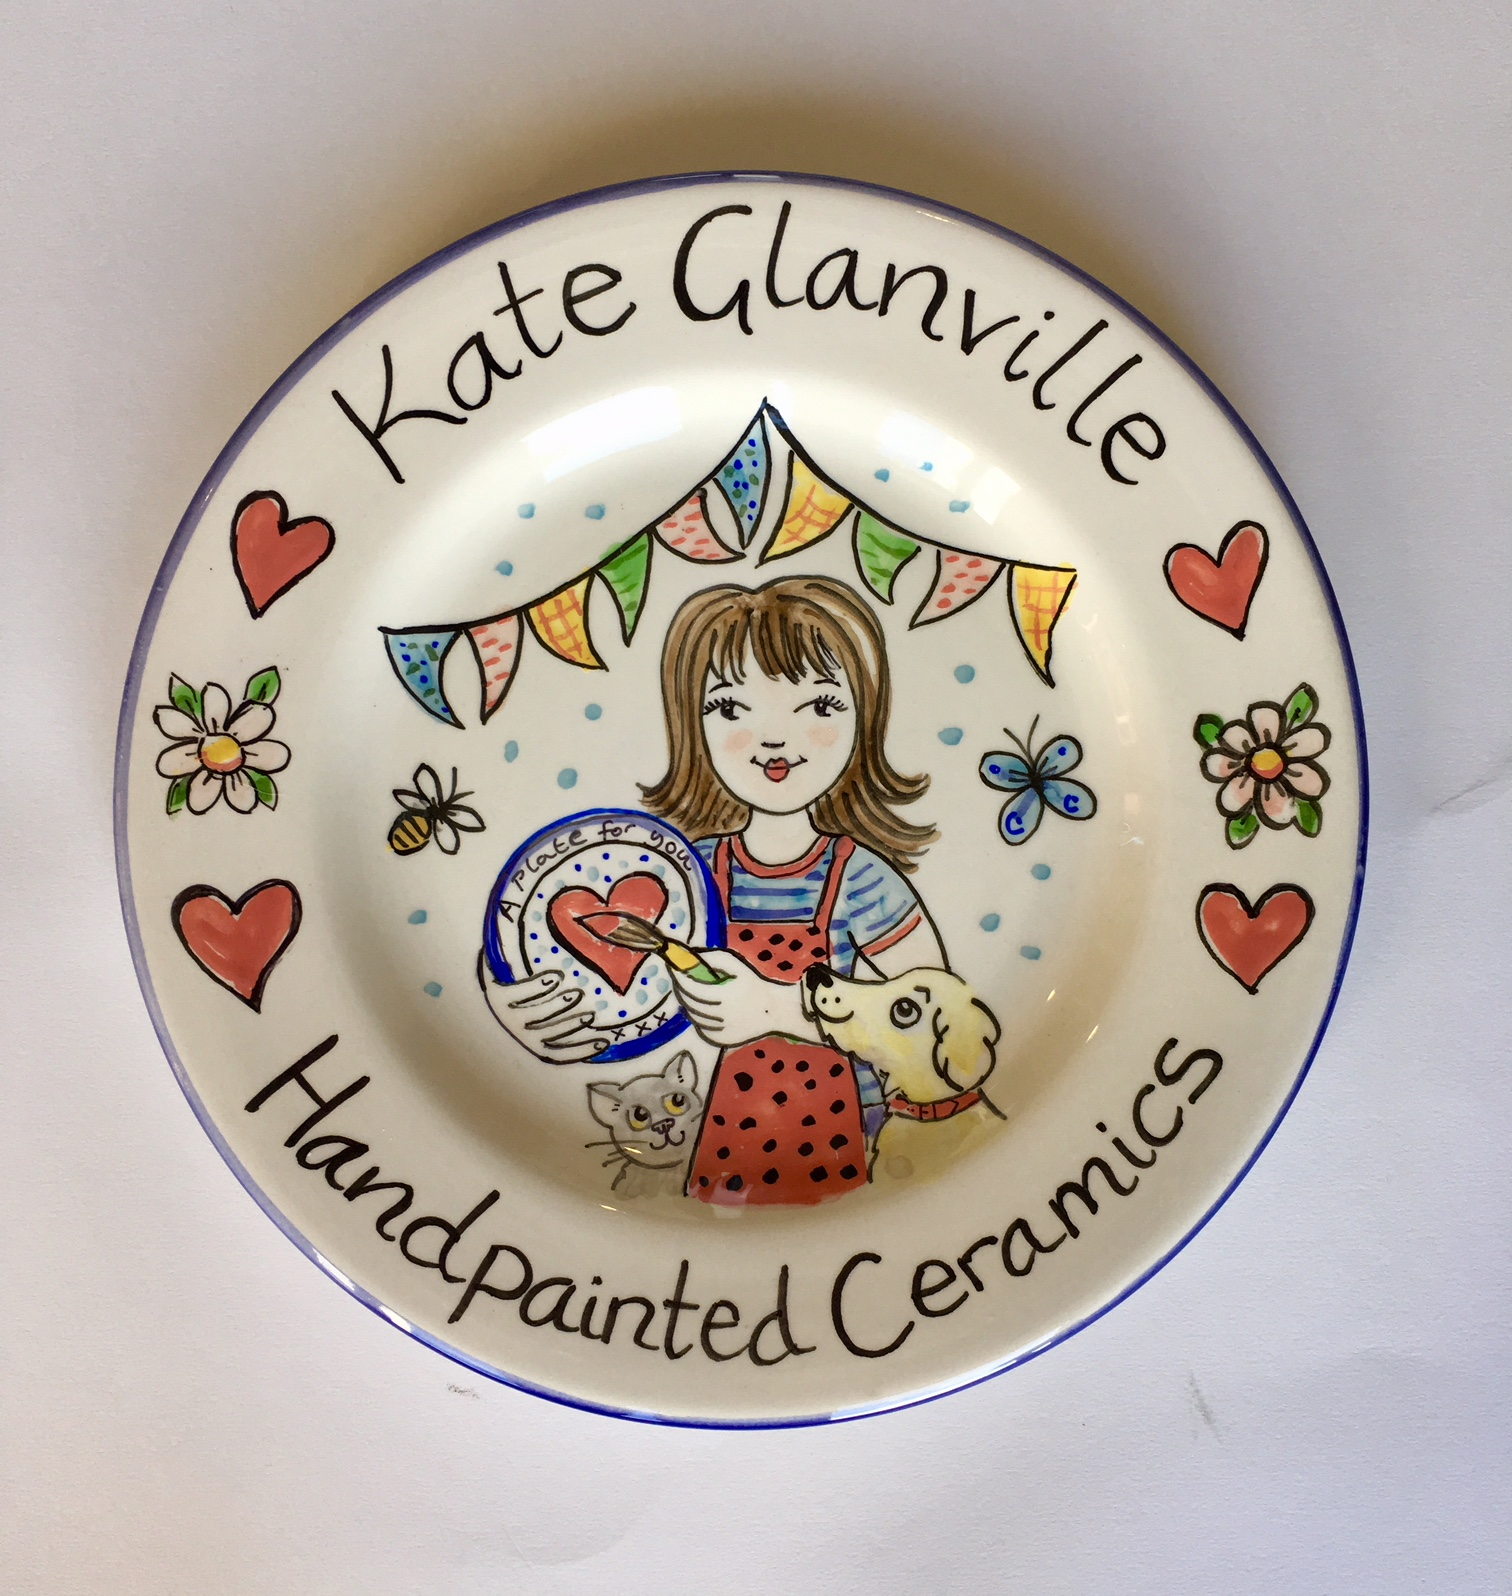 Hand Painted Plate  sc 1 st  Kate Glanville & Ceramic plates hand painted by Kate Glanville